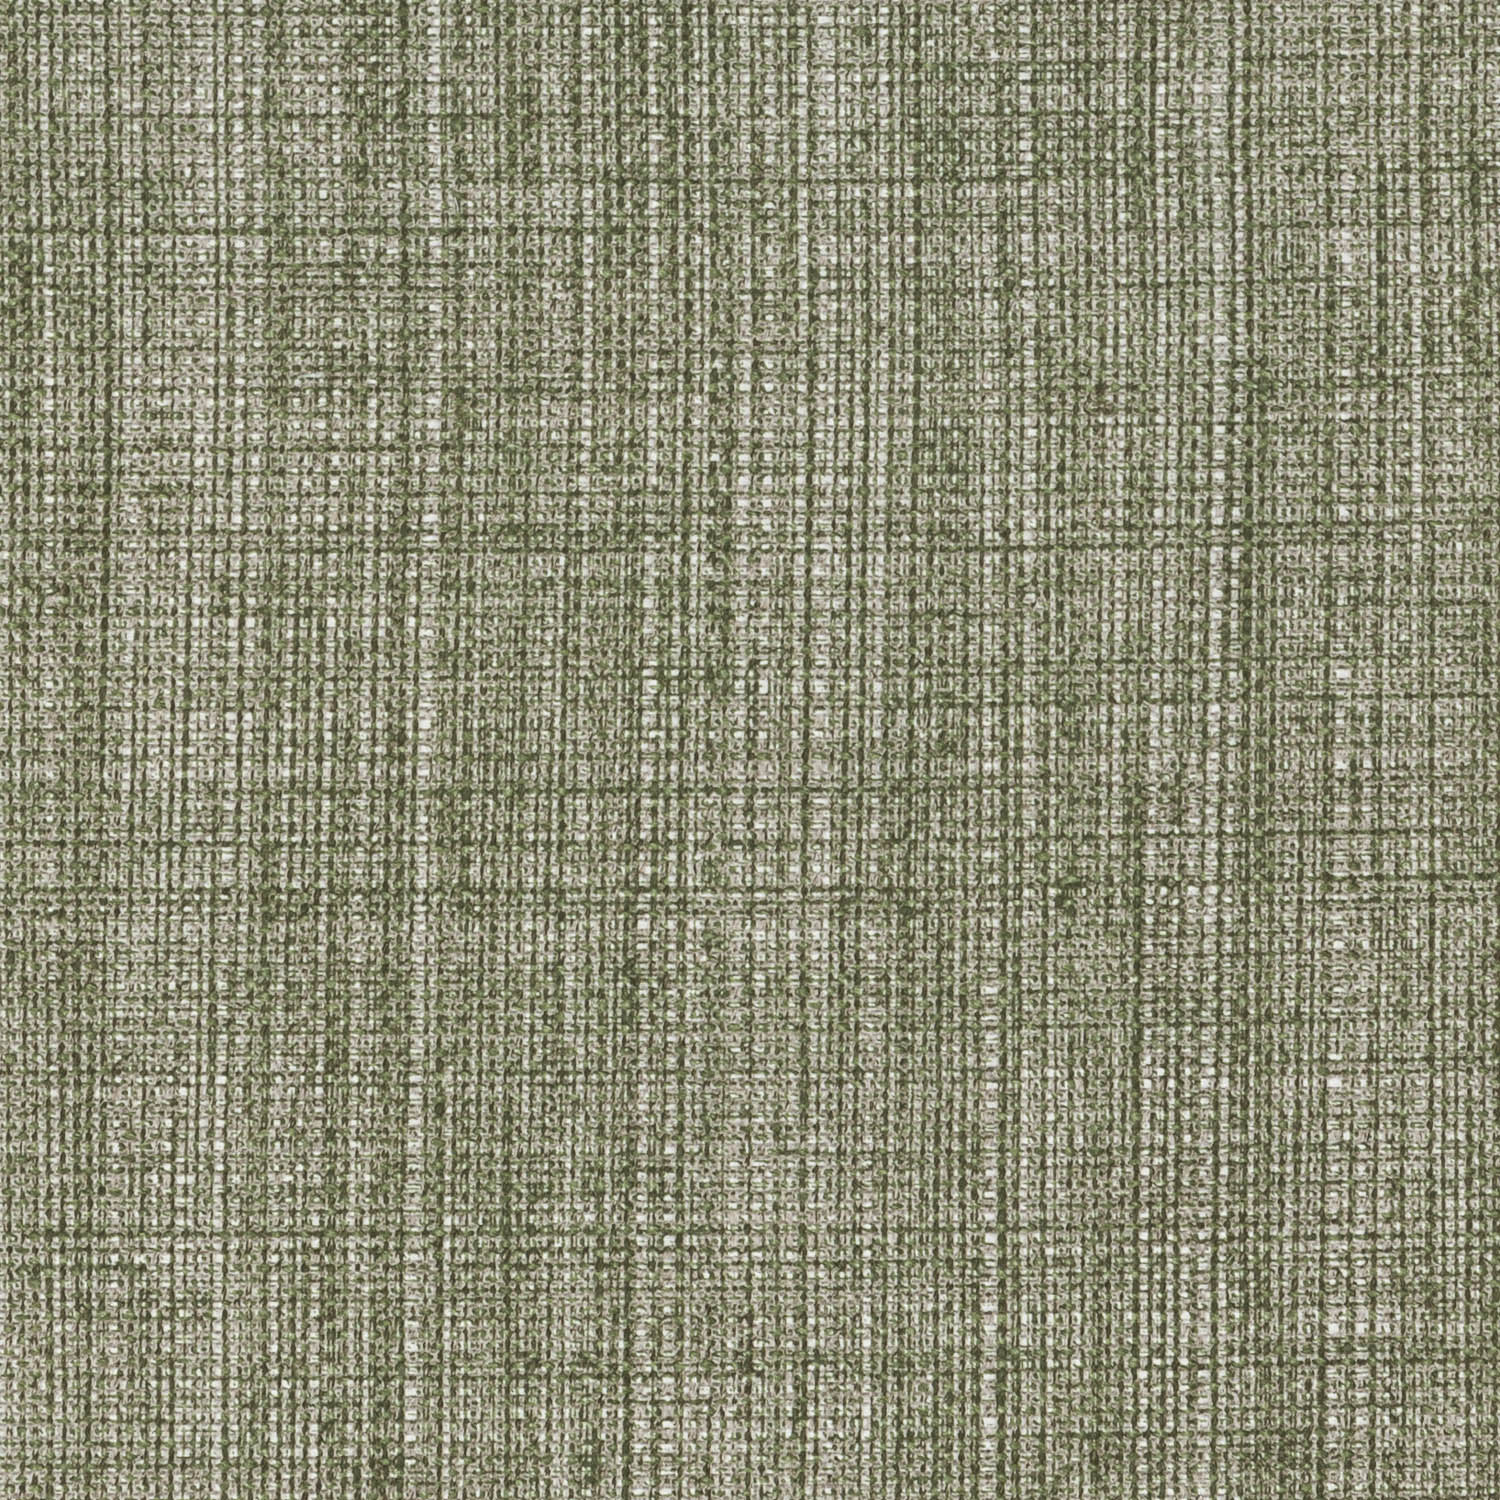 n-027-green-plain-linen-stackpole-1